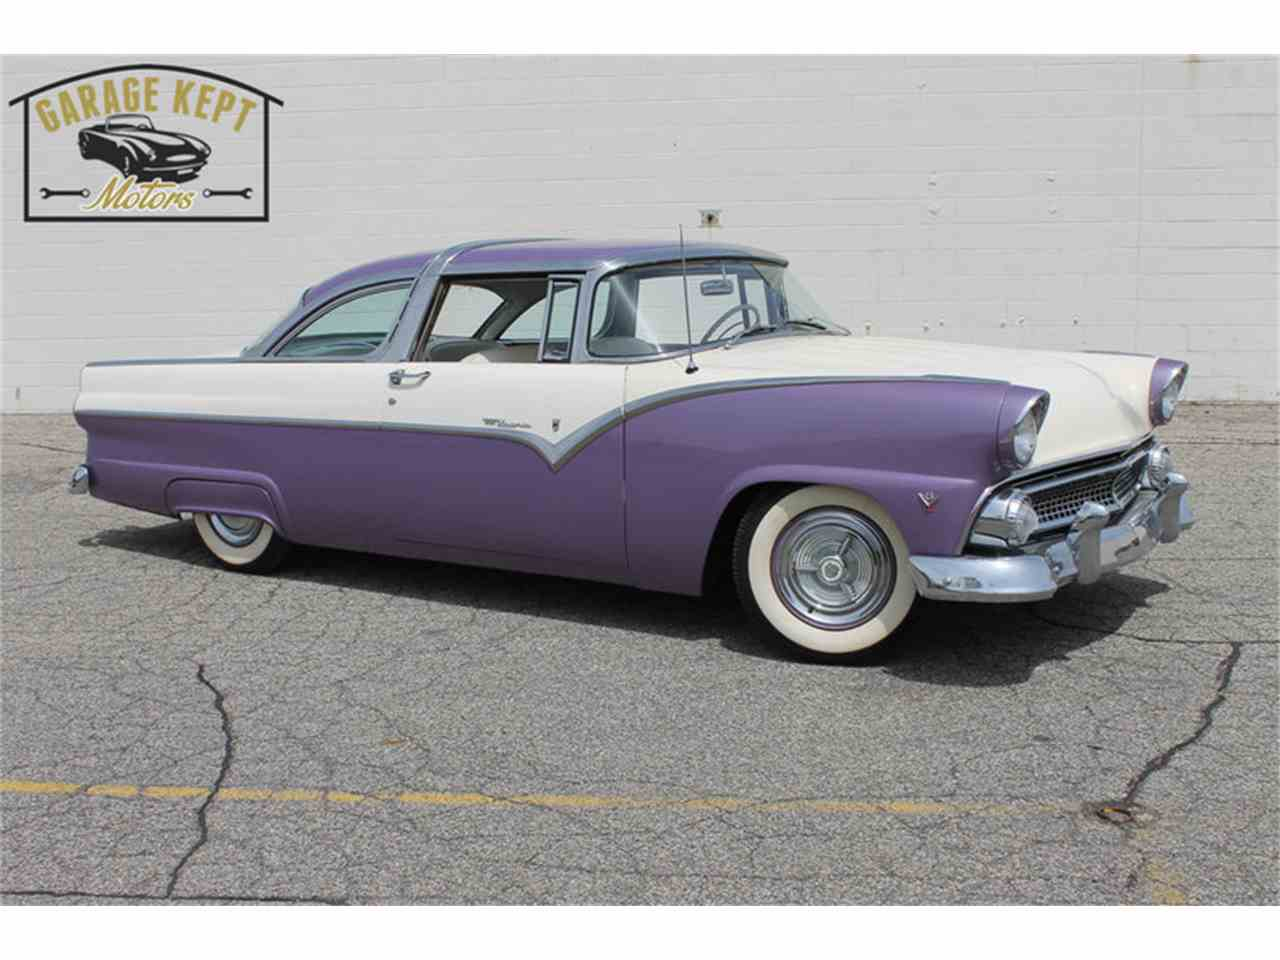 1955 ford fairlane crown victoria blog cars on line - 1955 Ford Crown Victoria For Sale Cc 1008378